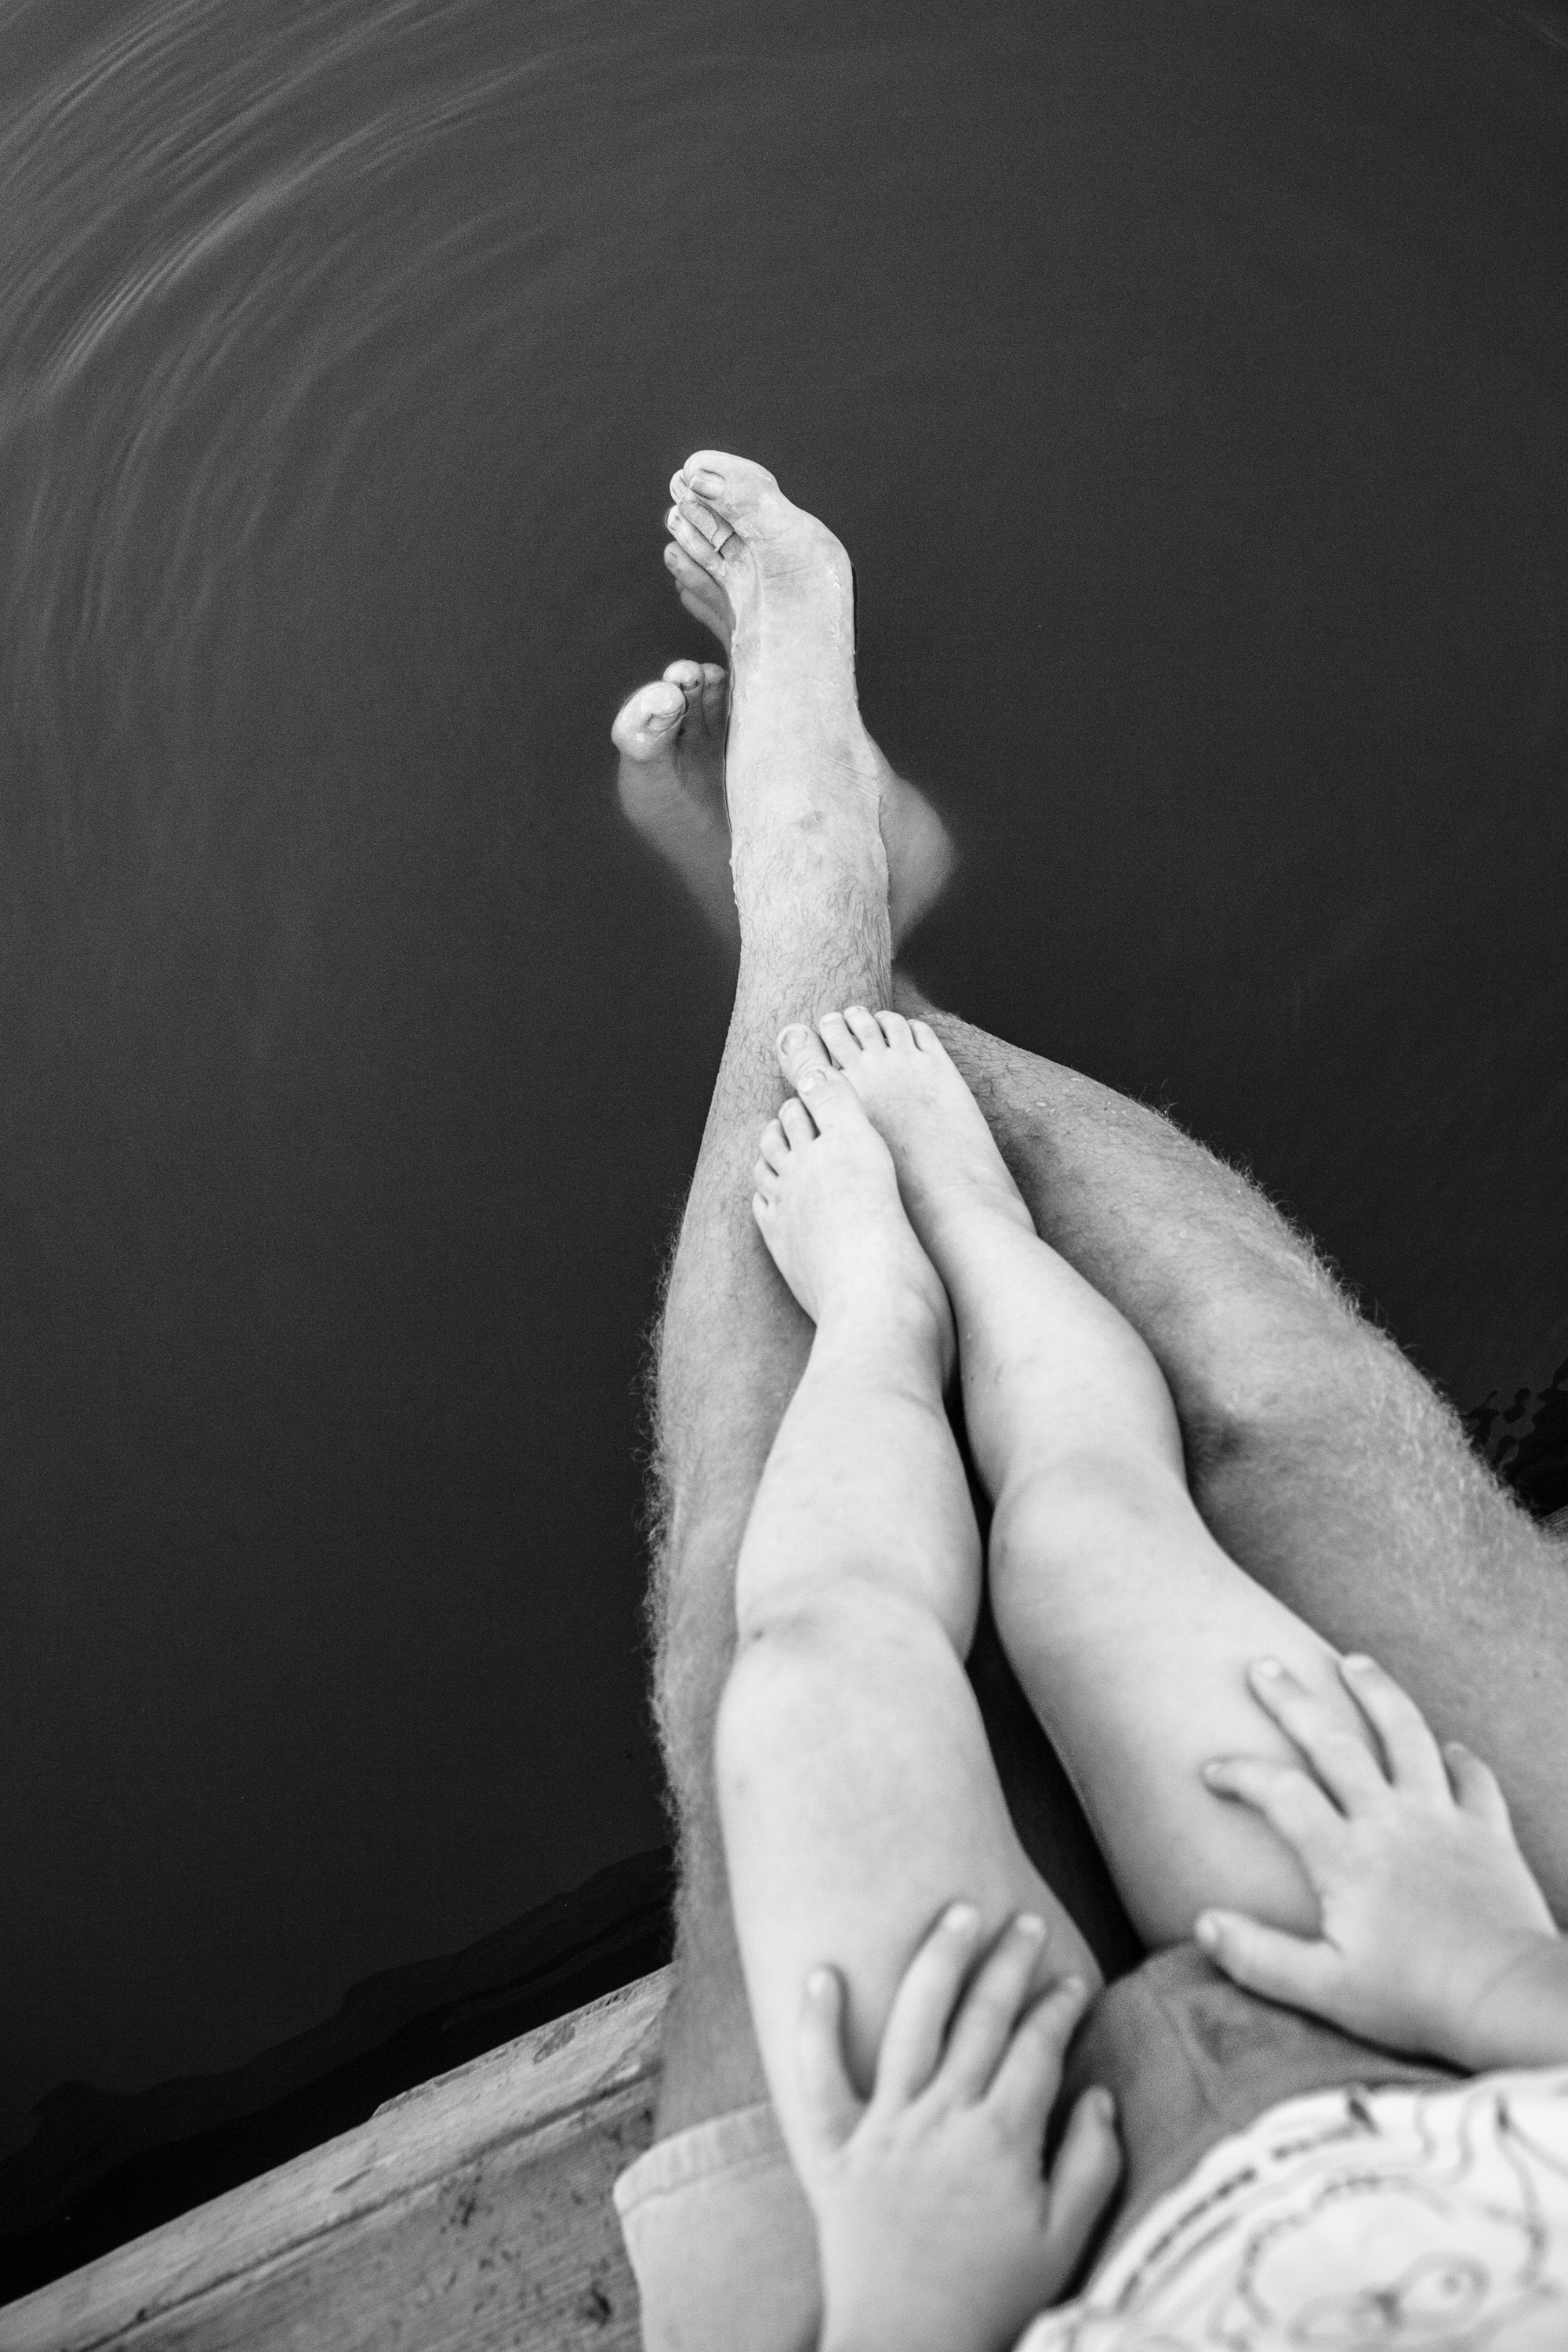 Five Weird Things That Happen to Your Feet as You Age